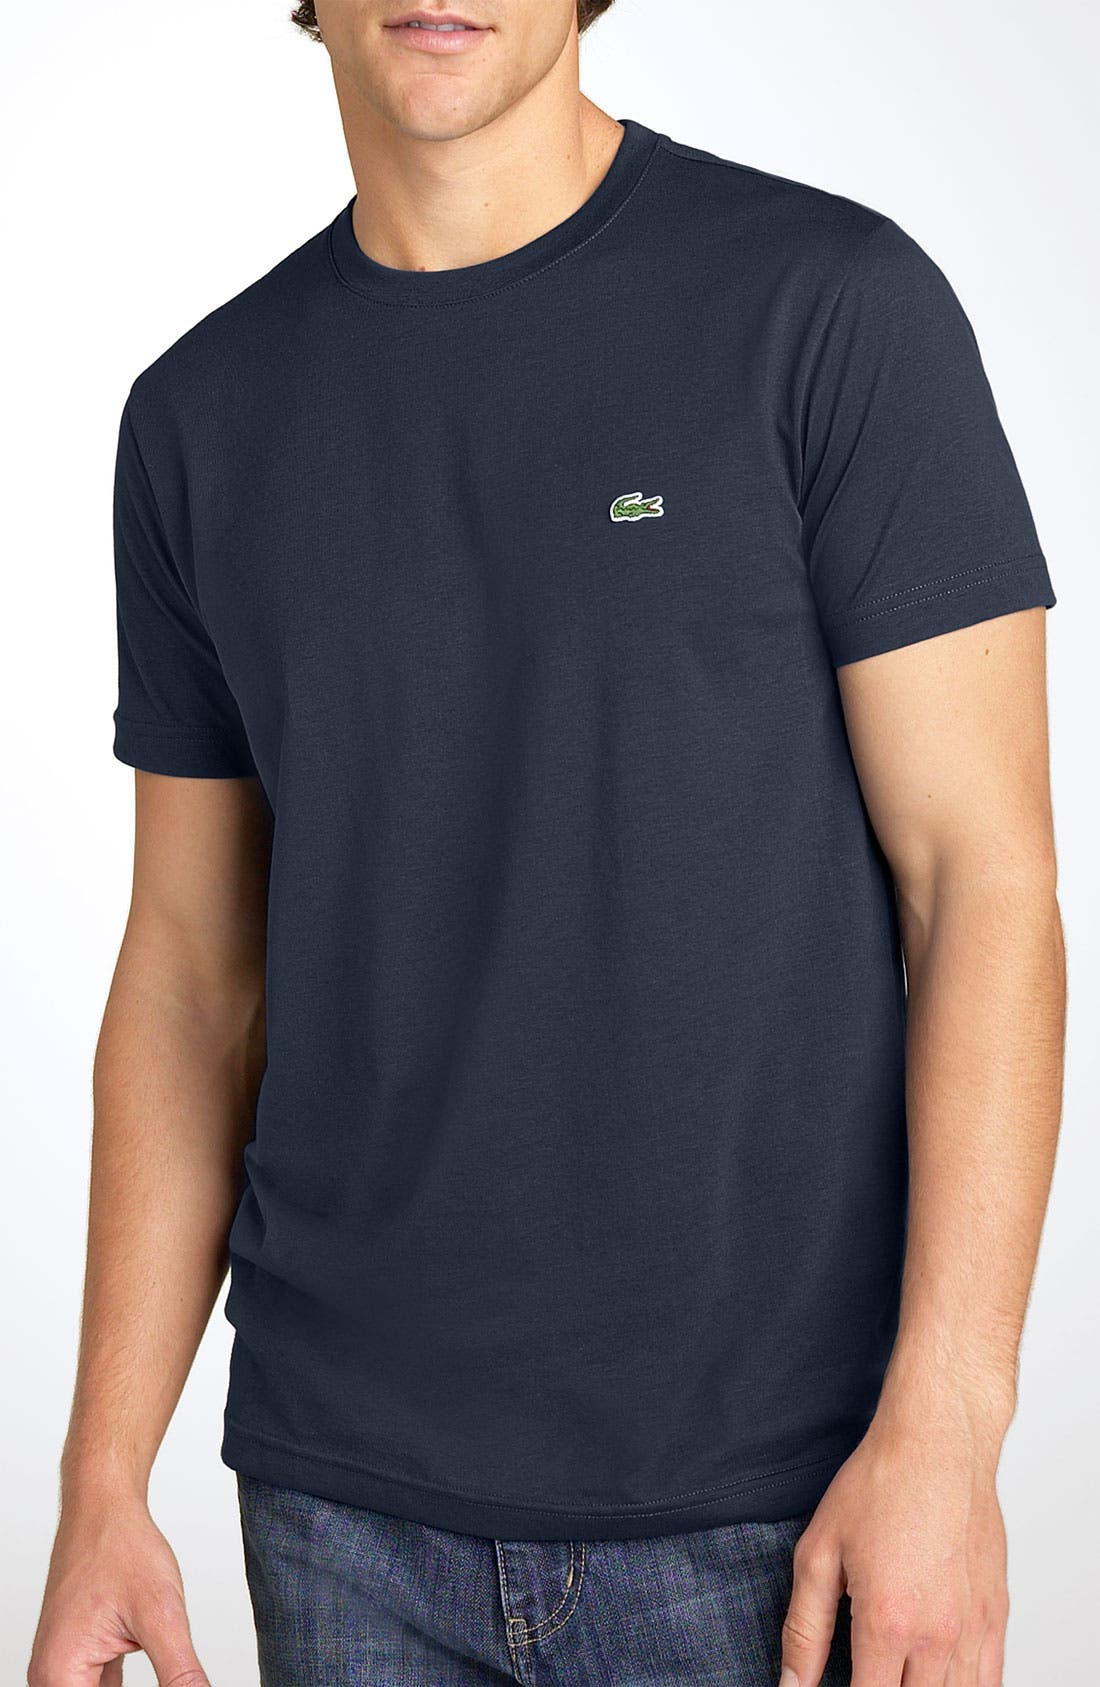 Alternate Image 1 Selected - Lacoste Pima Cotton T-Shirt (Big)